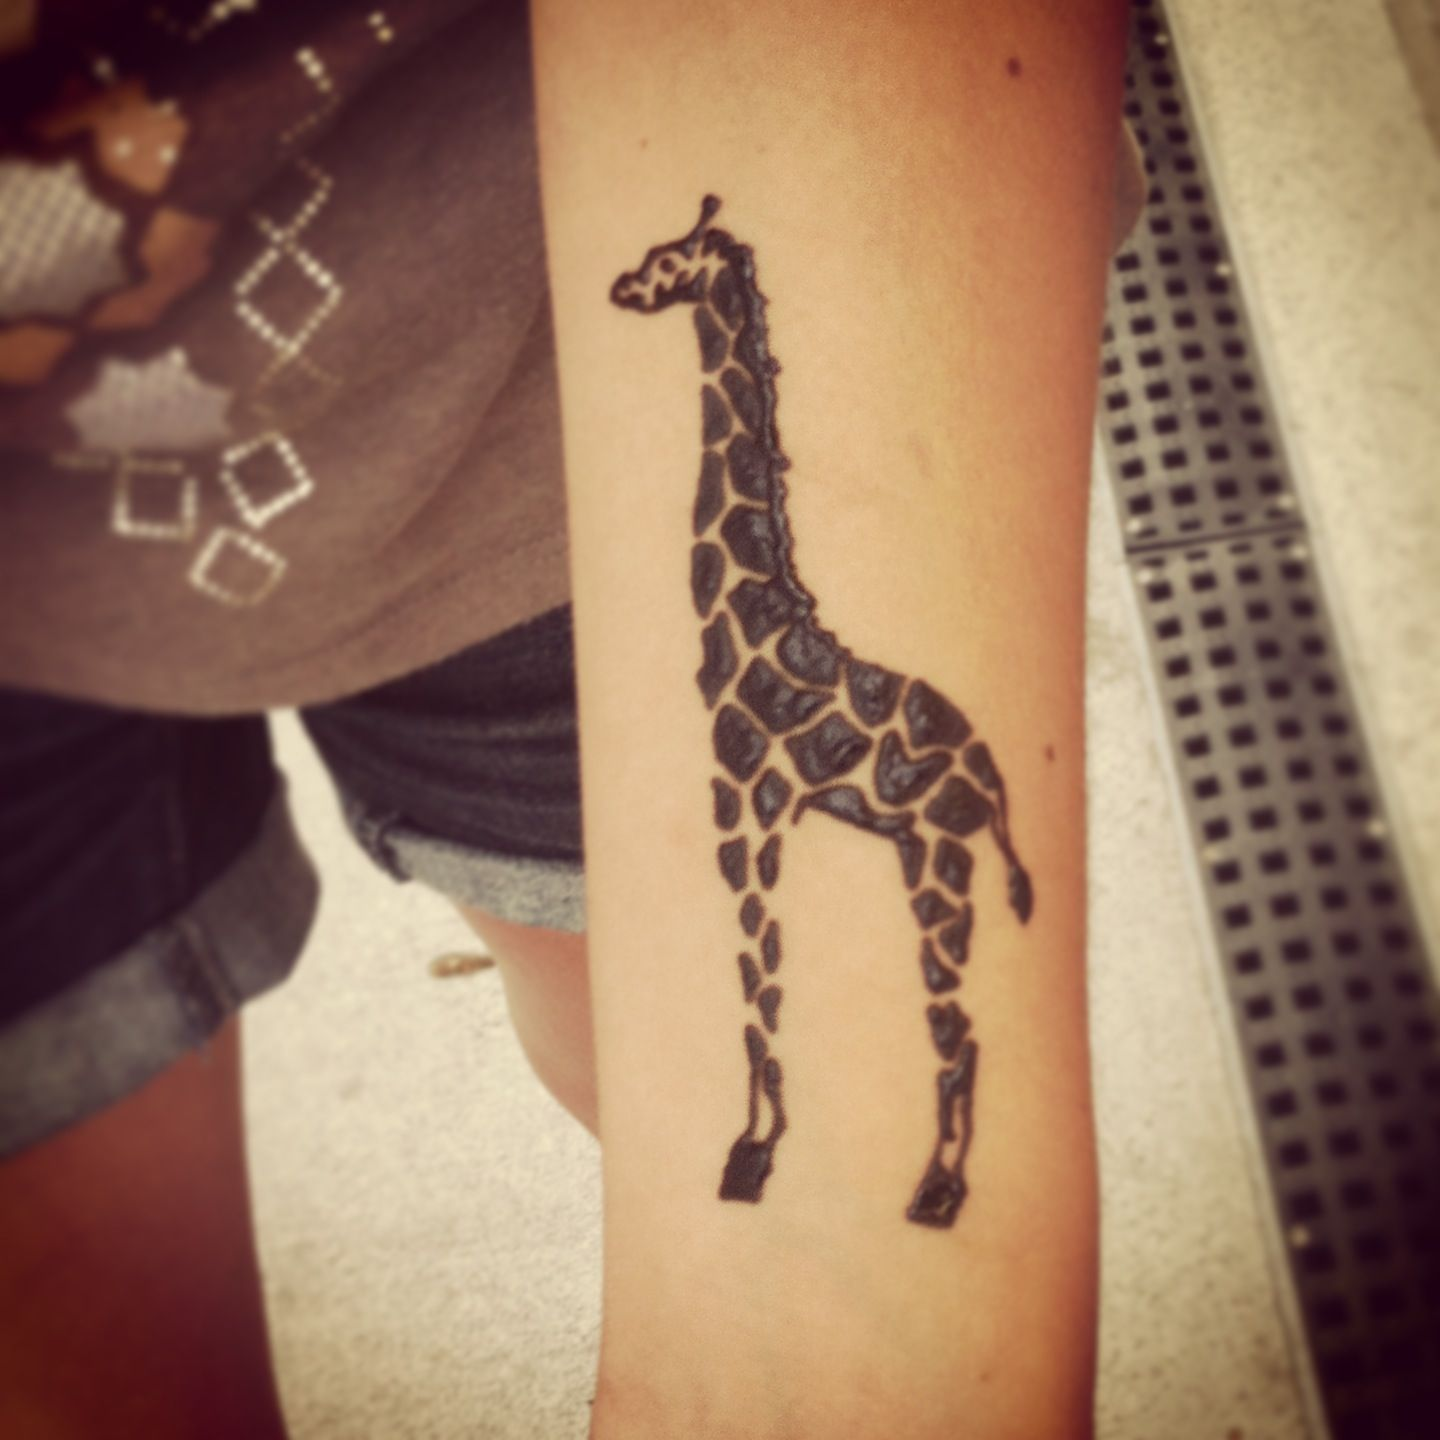 Henna Mehndi Tattoo Designs Idea For Wrist: My Giraffe Henna Tattoo On Wrist...I Love It! #tattoo